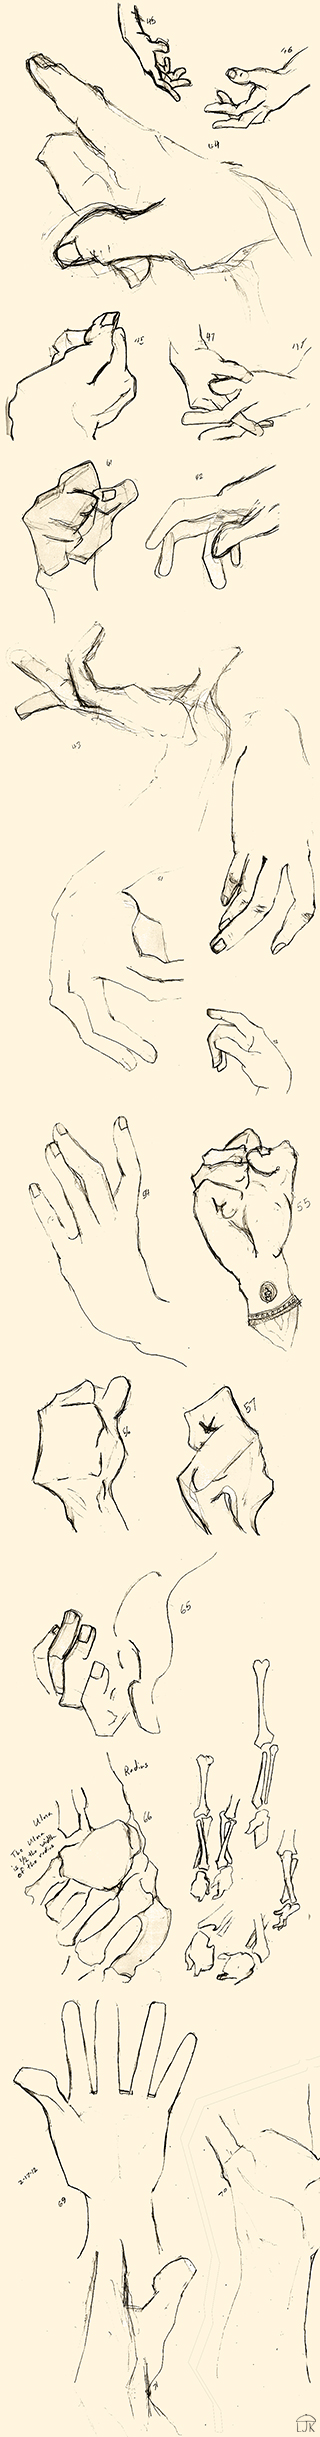 Bridgman Hand Studies